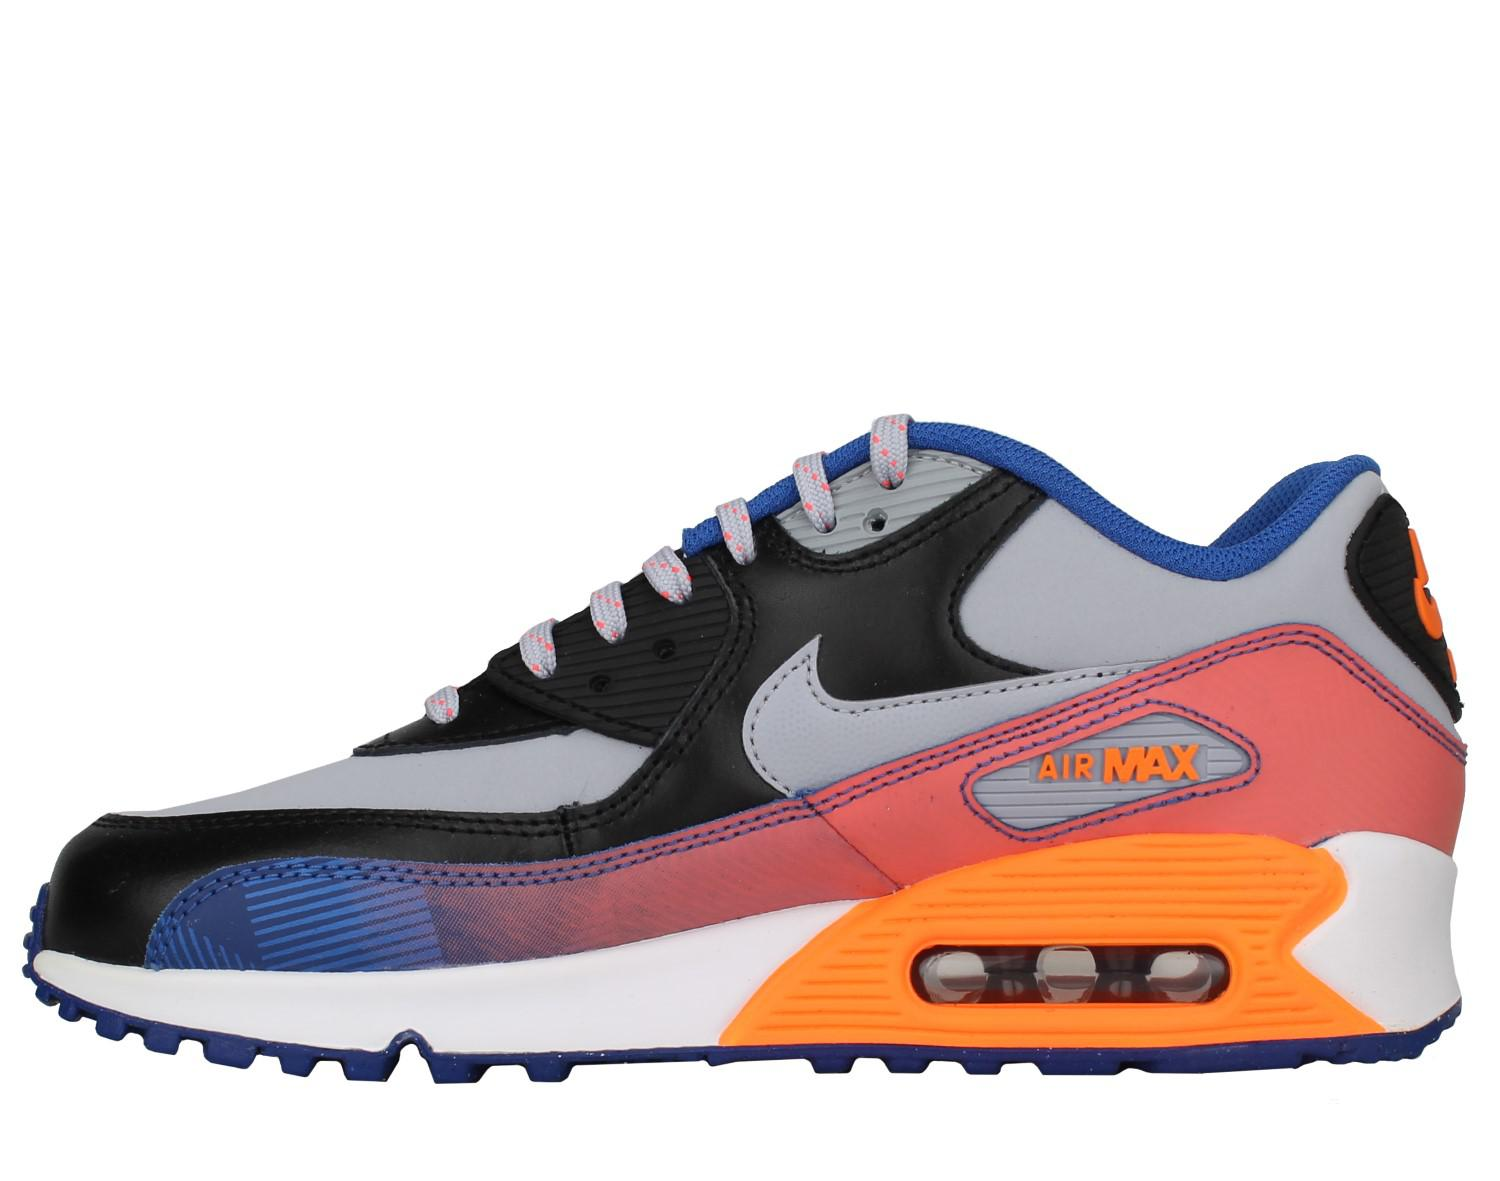 size 40 debaa d5a48 Lyst - Nike Air Max 90 Premium Leather (gs) Big Kids Running Shoes ...